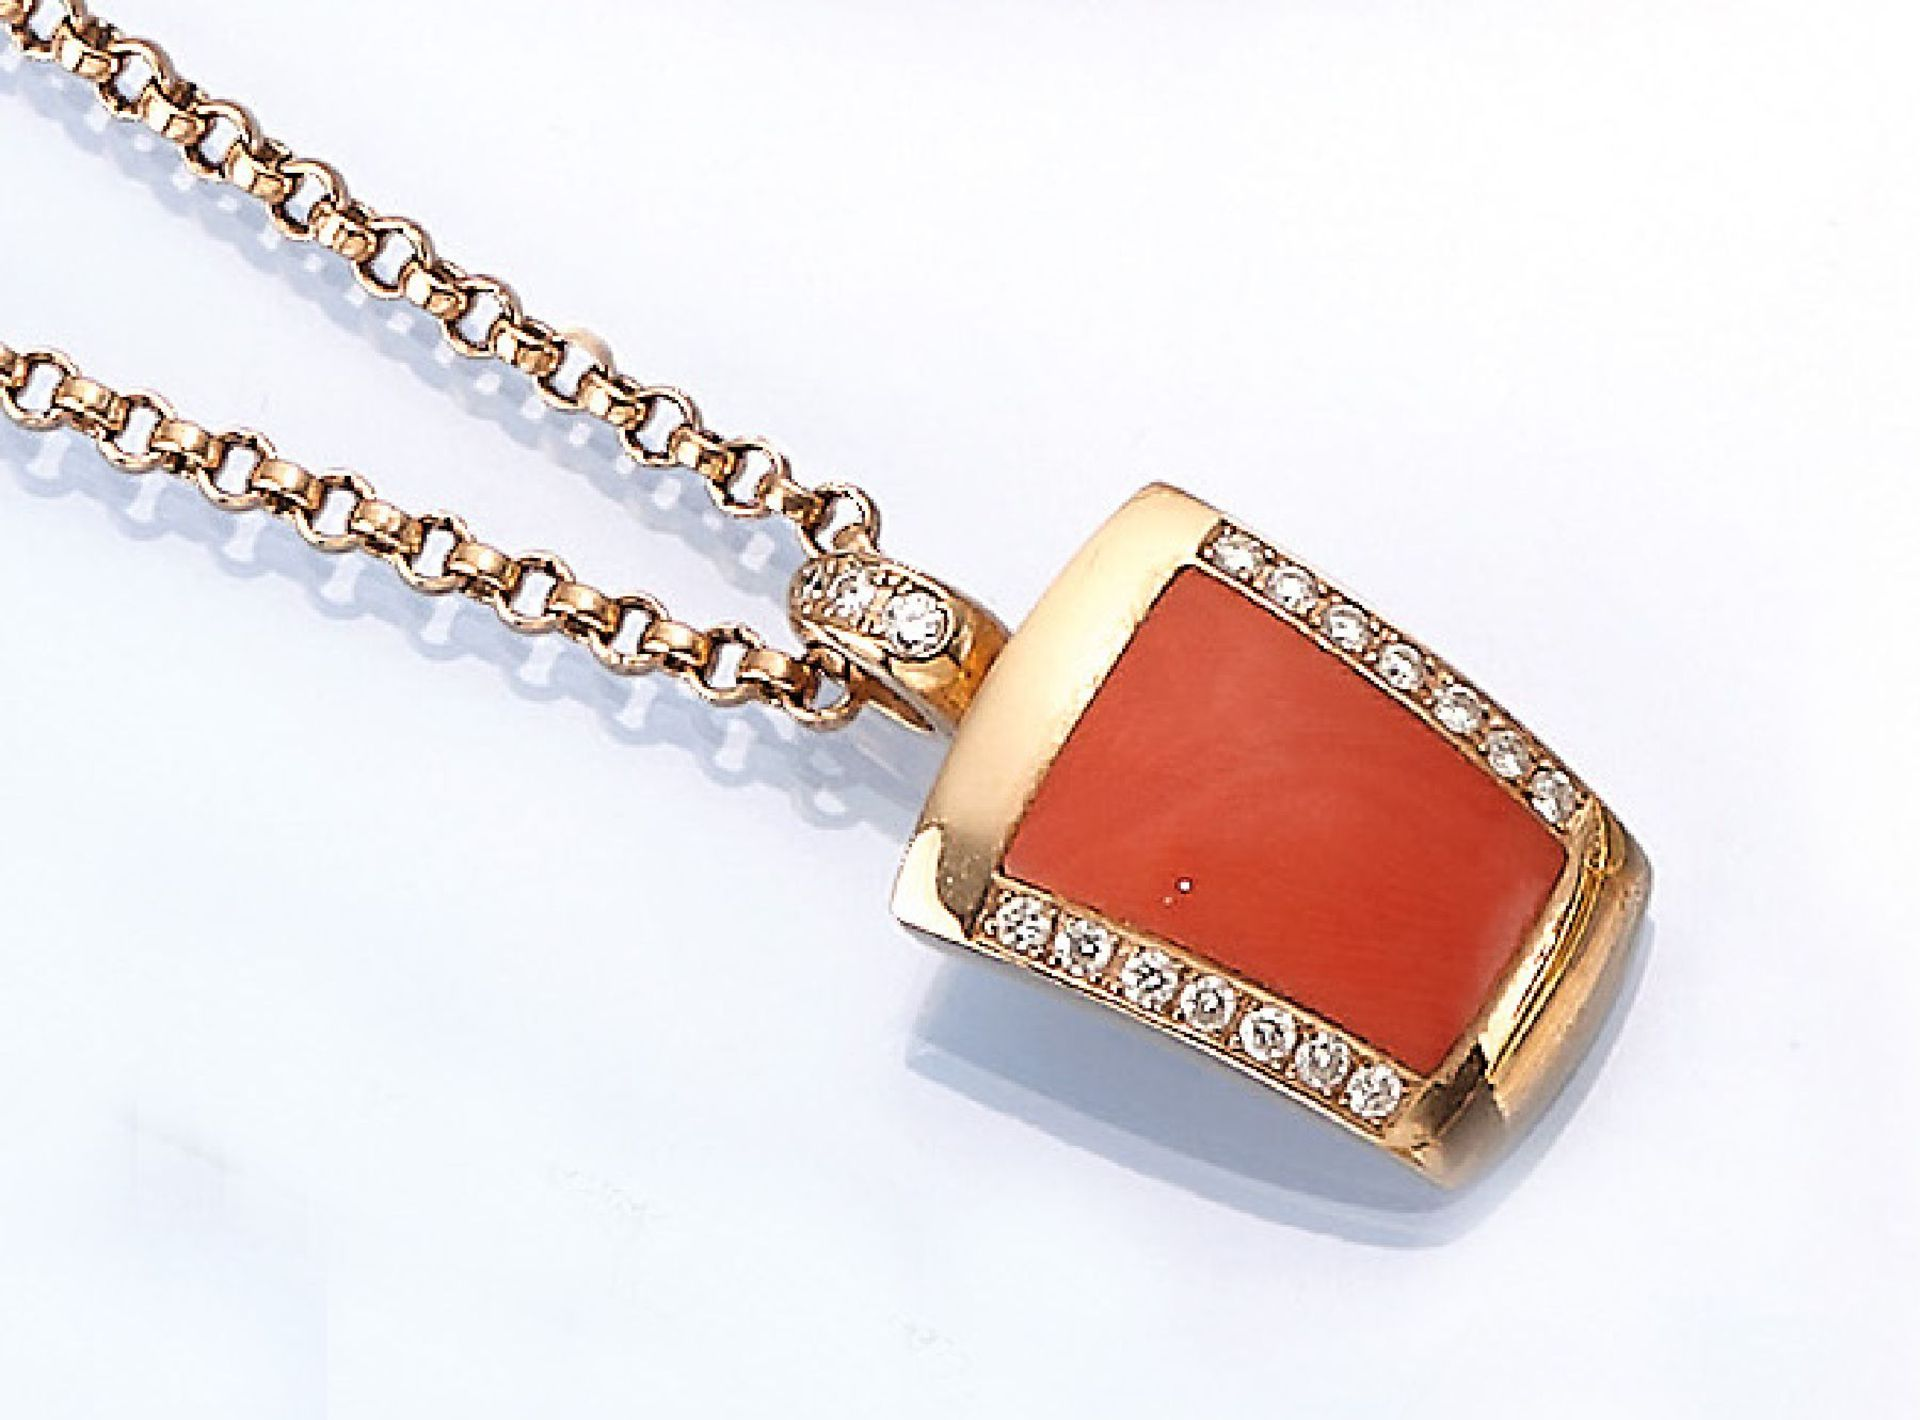 Los 61527 - 18 kt gold pendant with coral and brilliants , YG 750/000, chain l. approx. 42 cm, manufacturer's